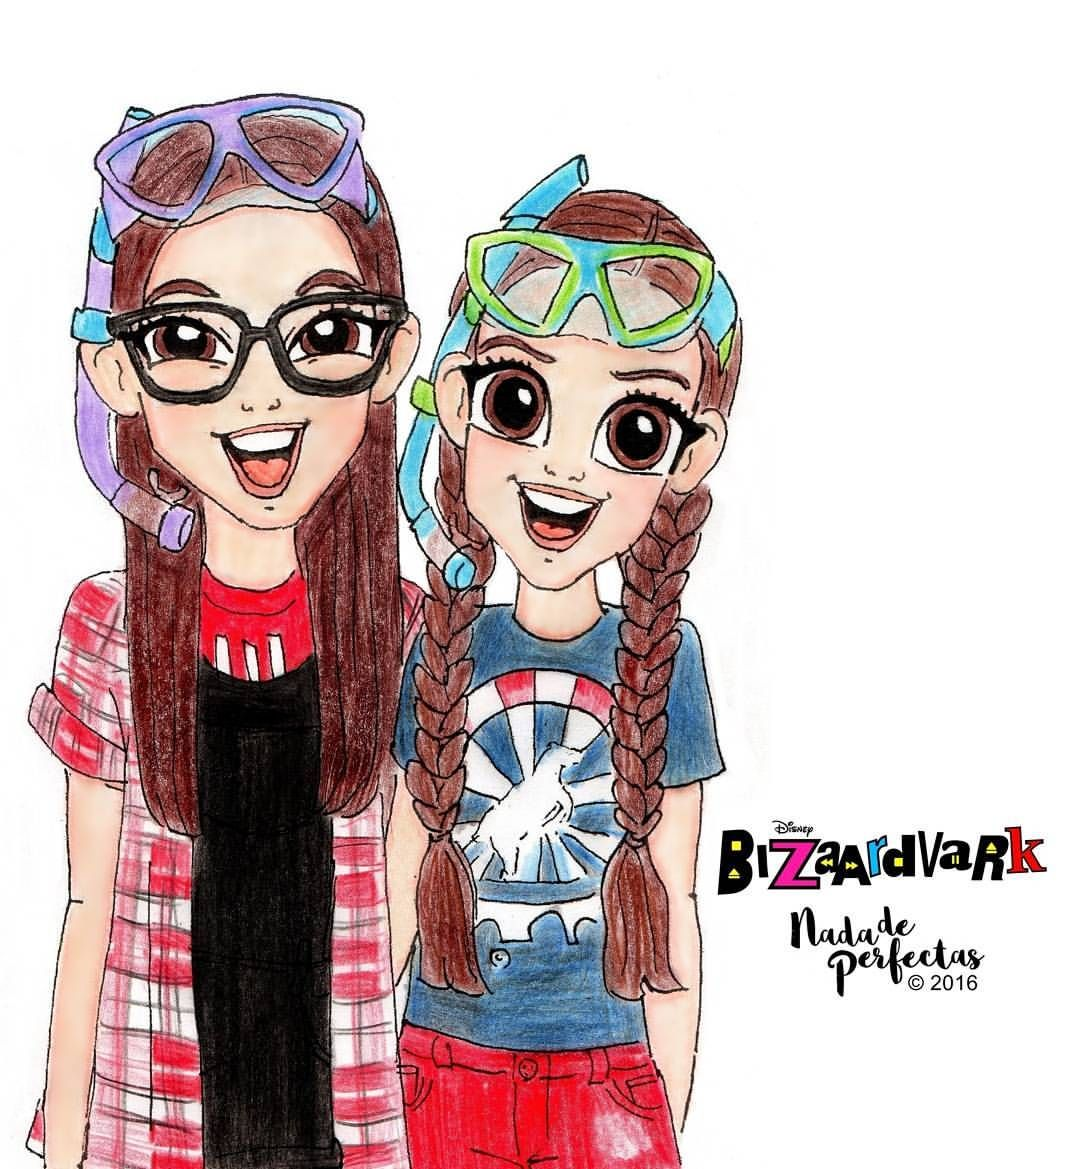 Bizaardvark, Bizaardvark, Bizaardvark! My drawing for this amazing ...